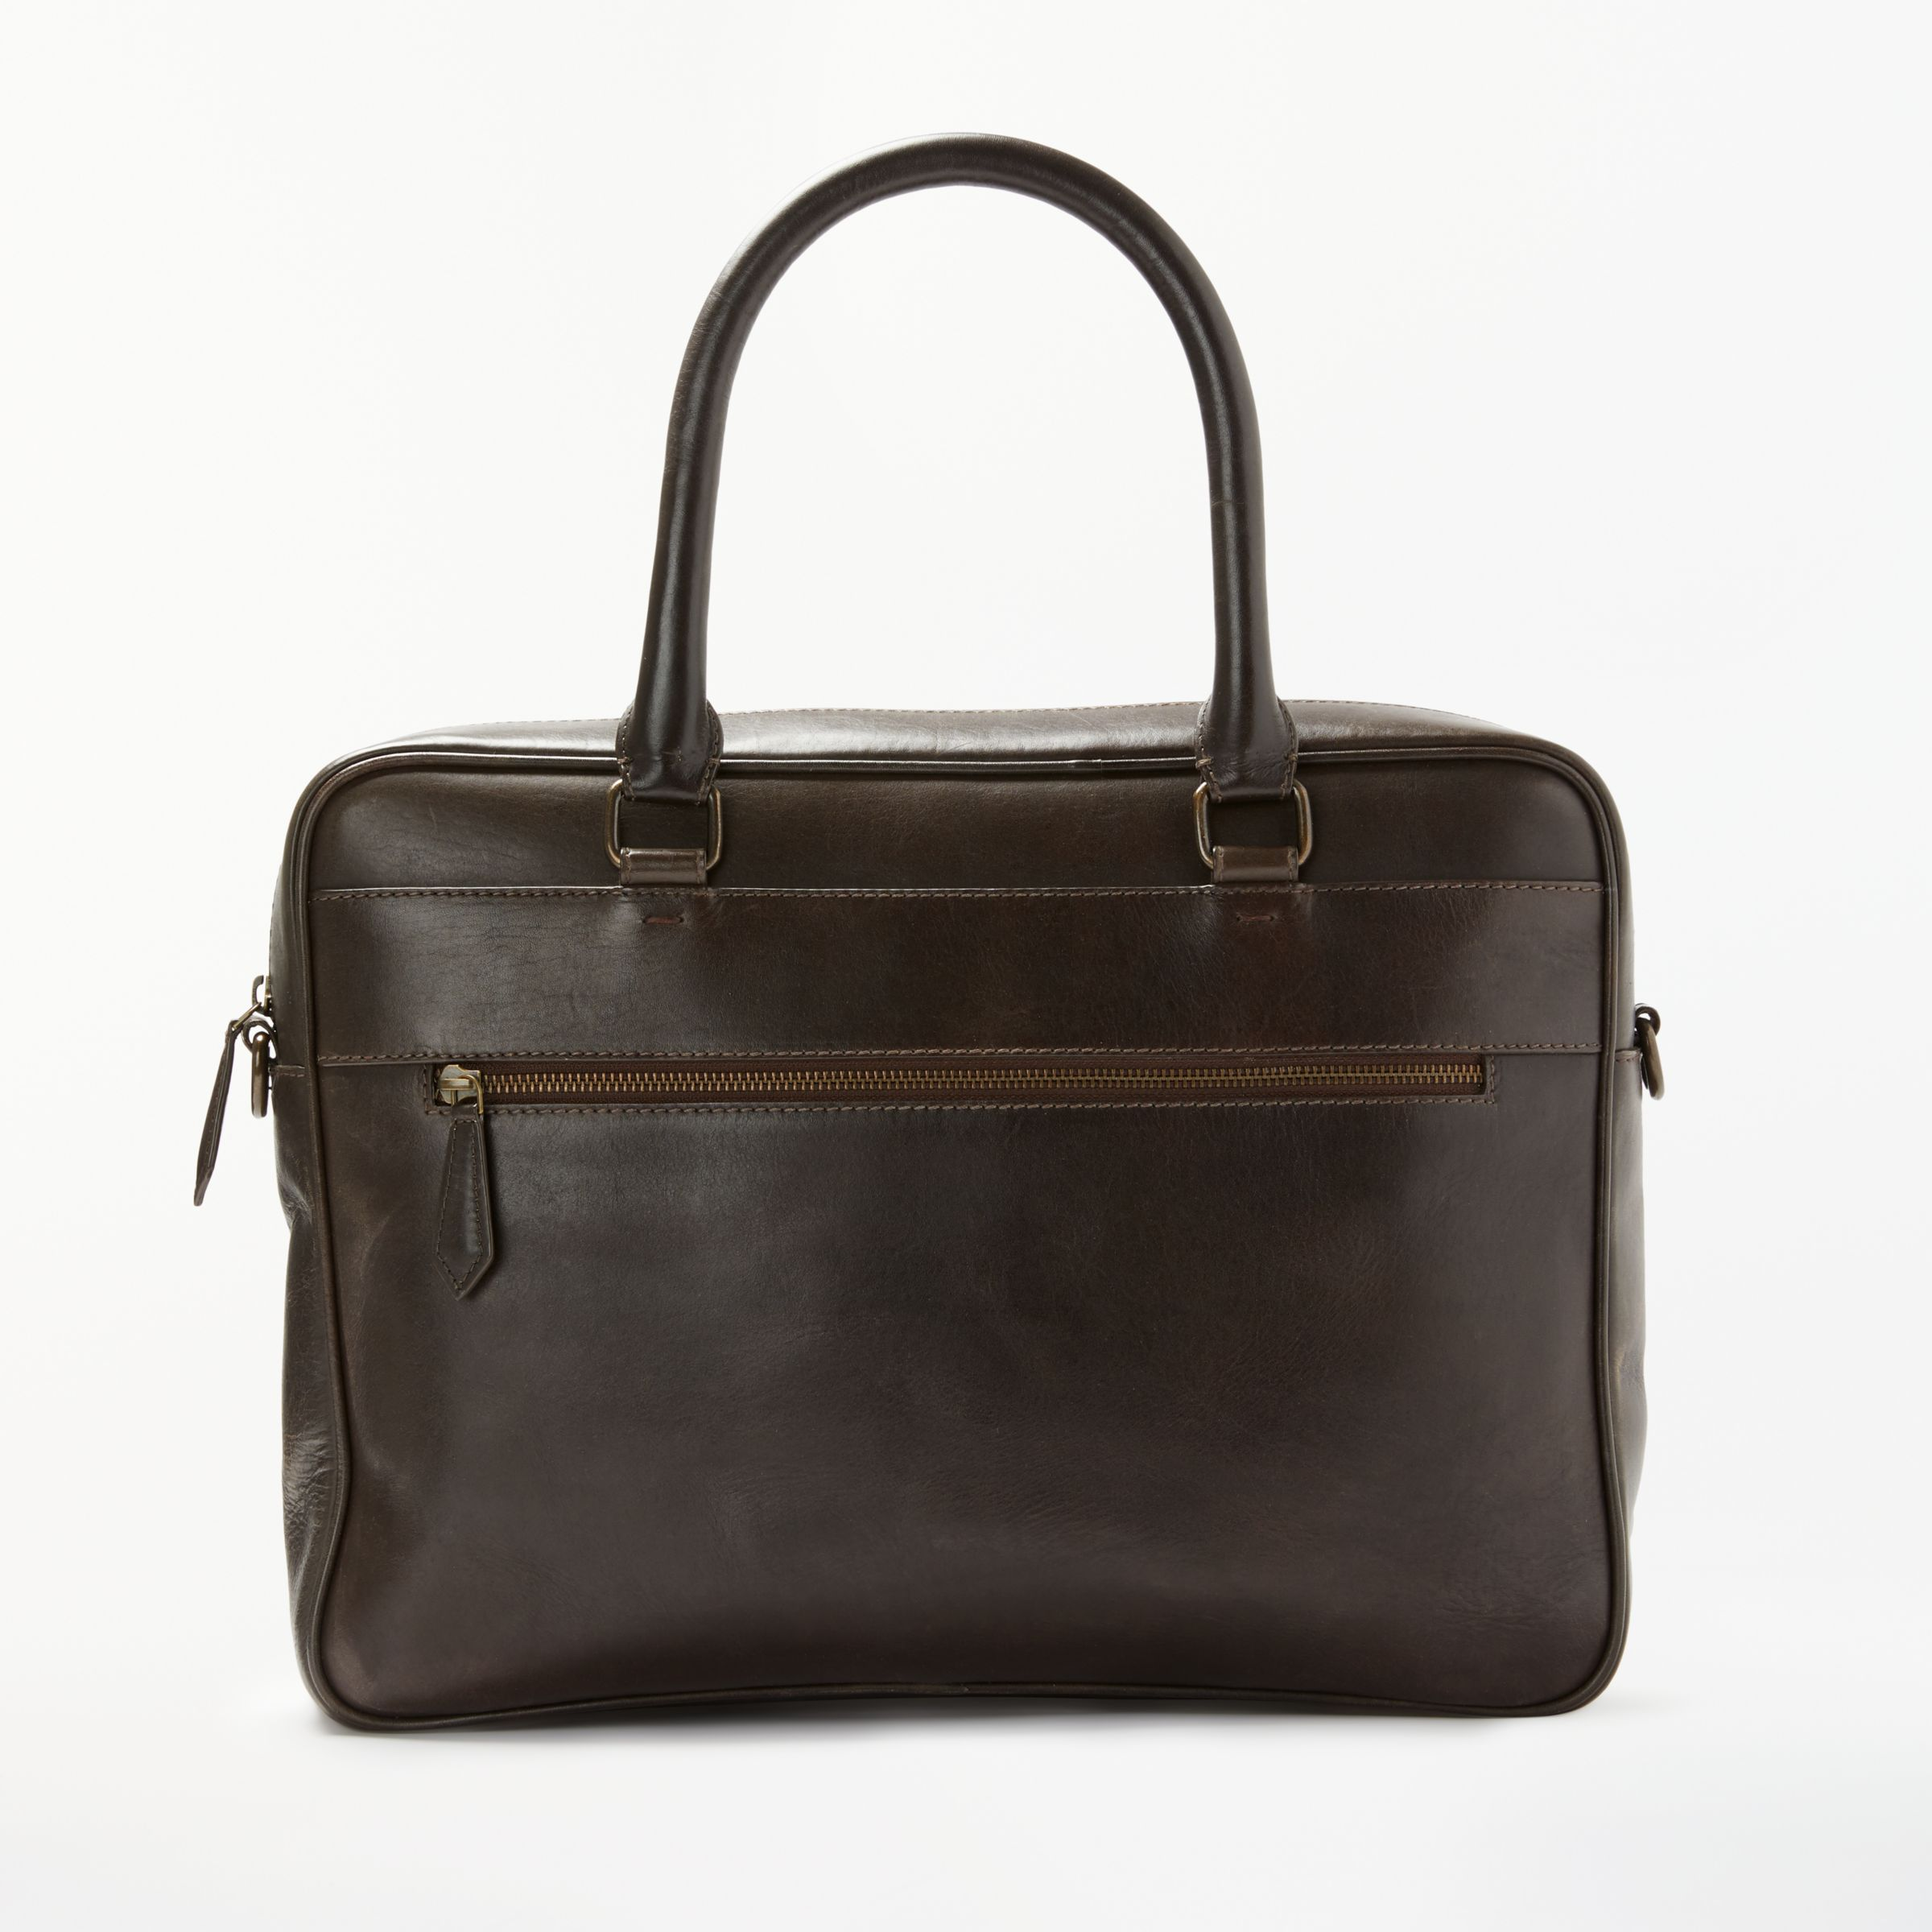 02874a8ae9d John Lewis   Partners Milan Leather Briefcase, Brown at John Lewis    Partners